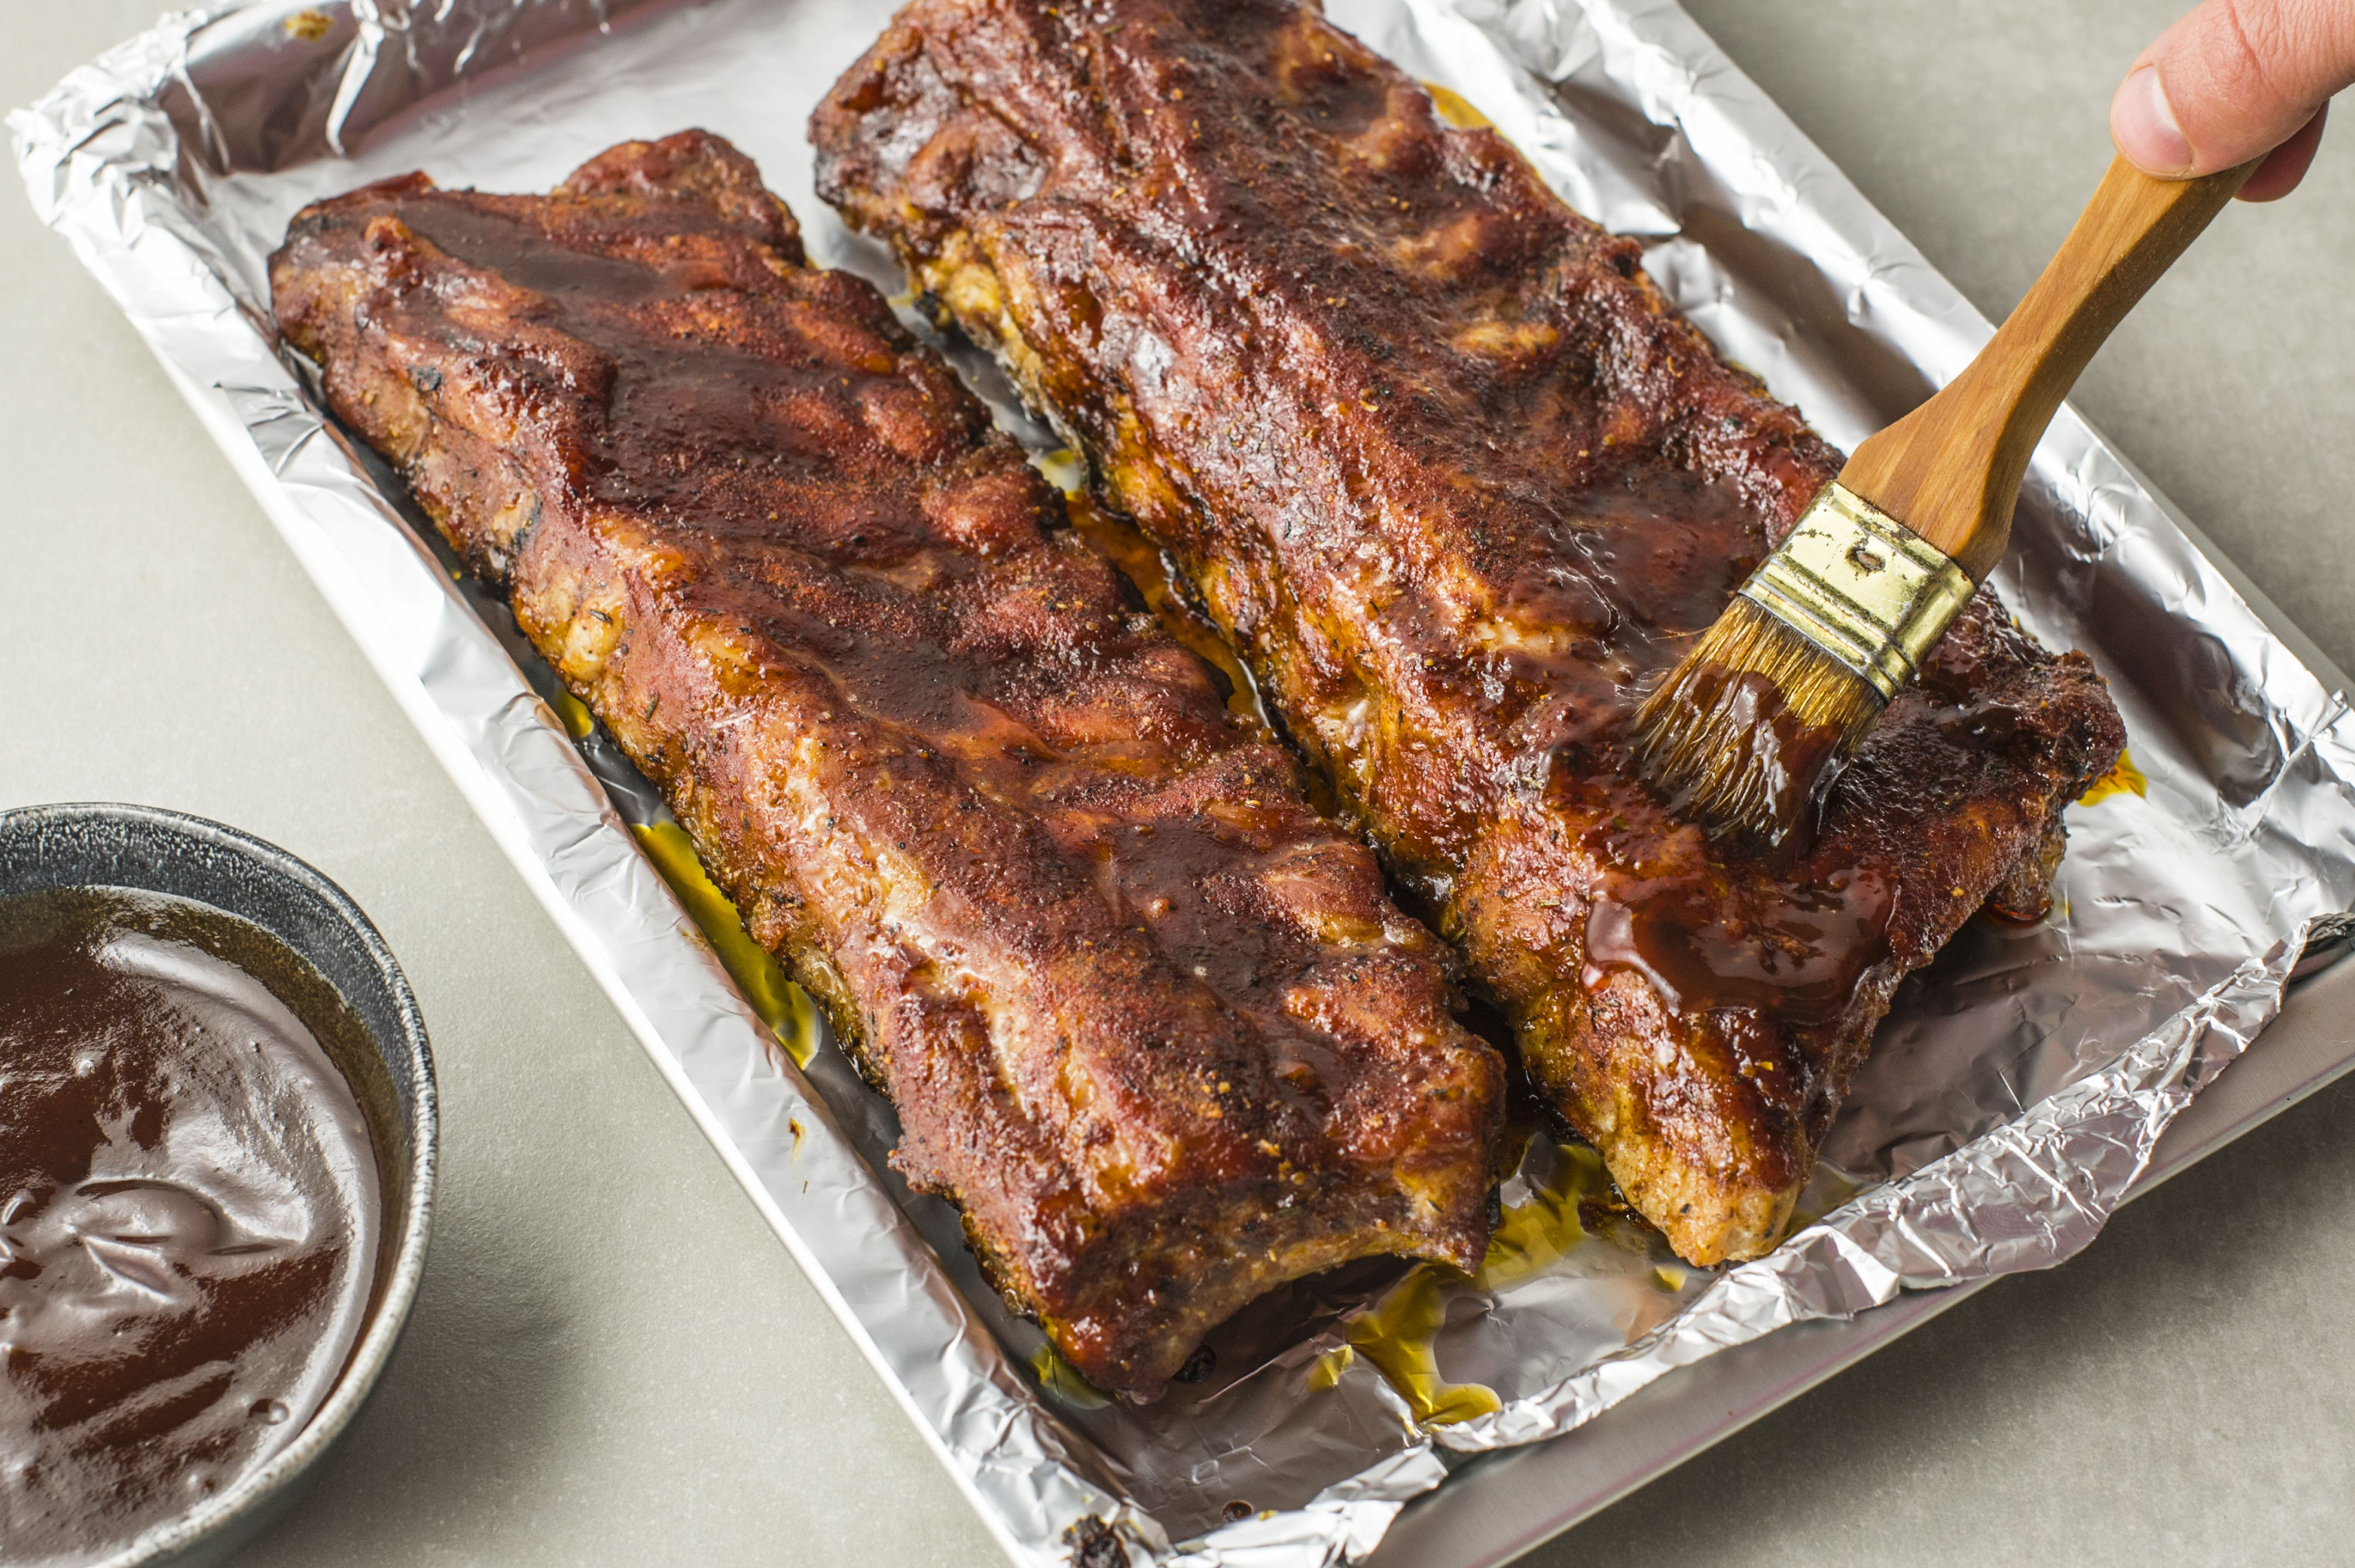 Cooked ribs being painted with more sauce